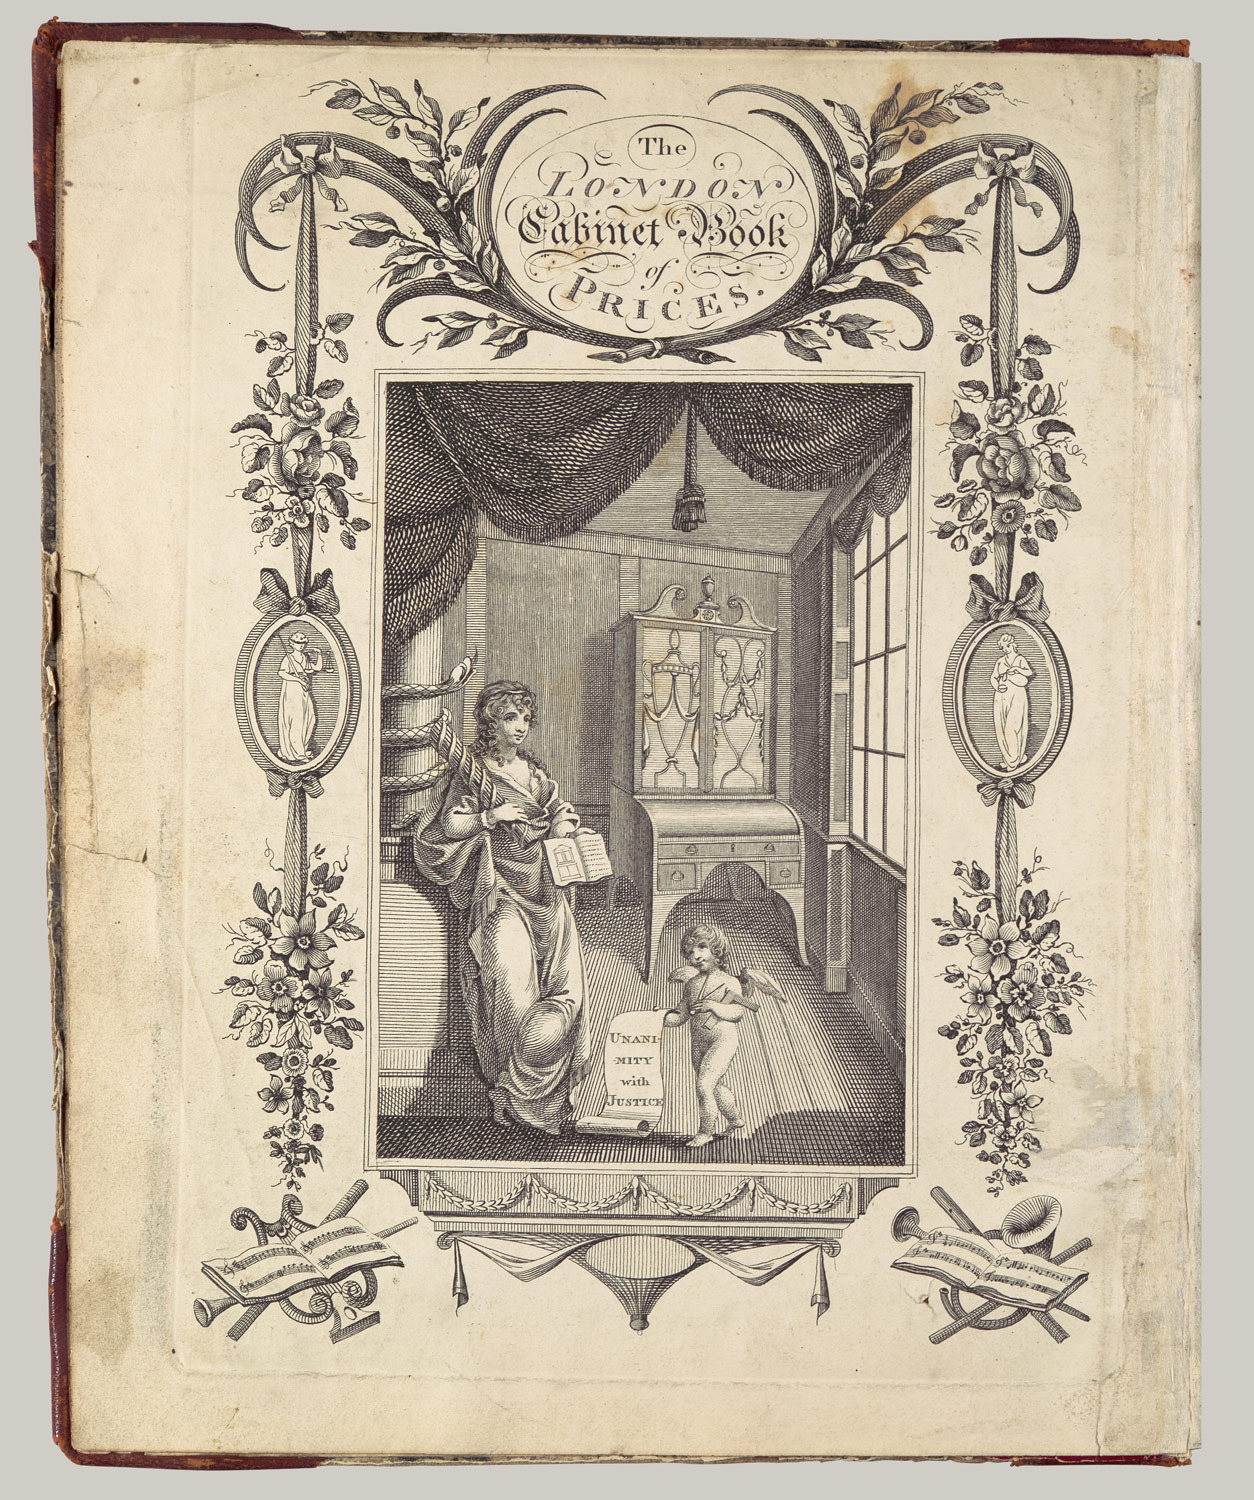 The Cabinet-Makers London Book of Prices: Frontispiece, title page, plates 1 and 6